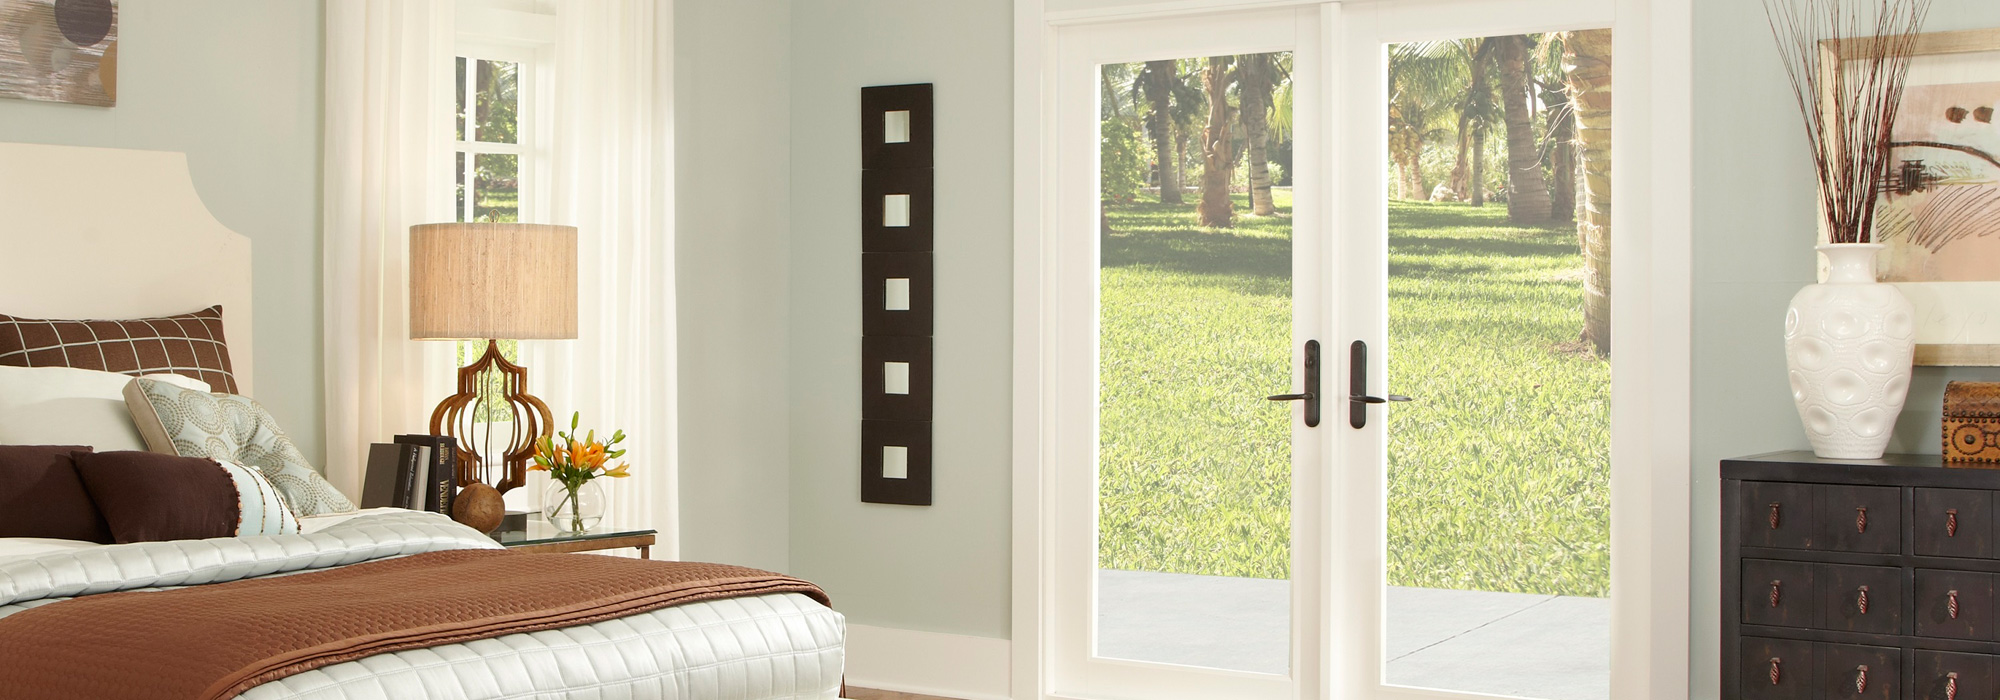 Tampa Bay Replacement Windows And Doors